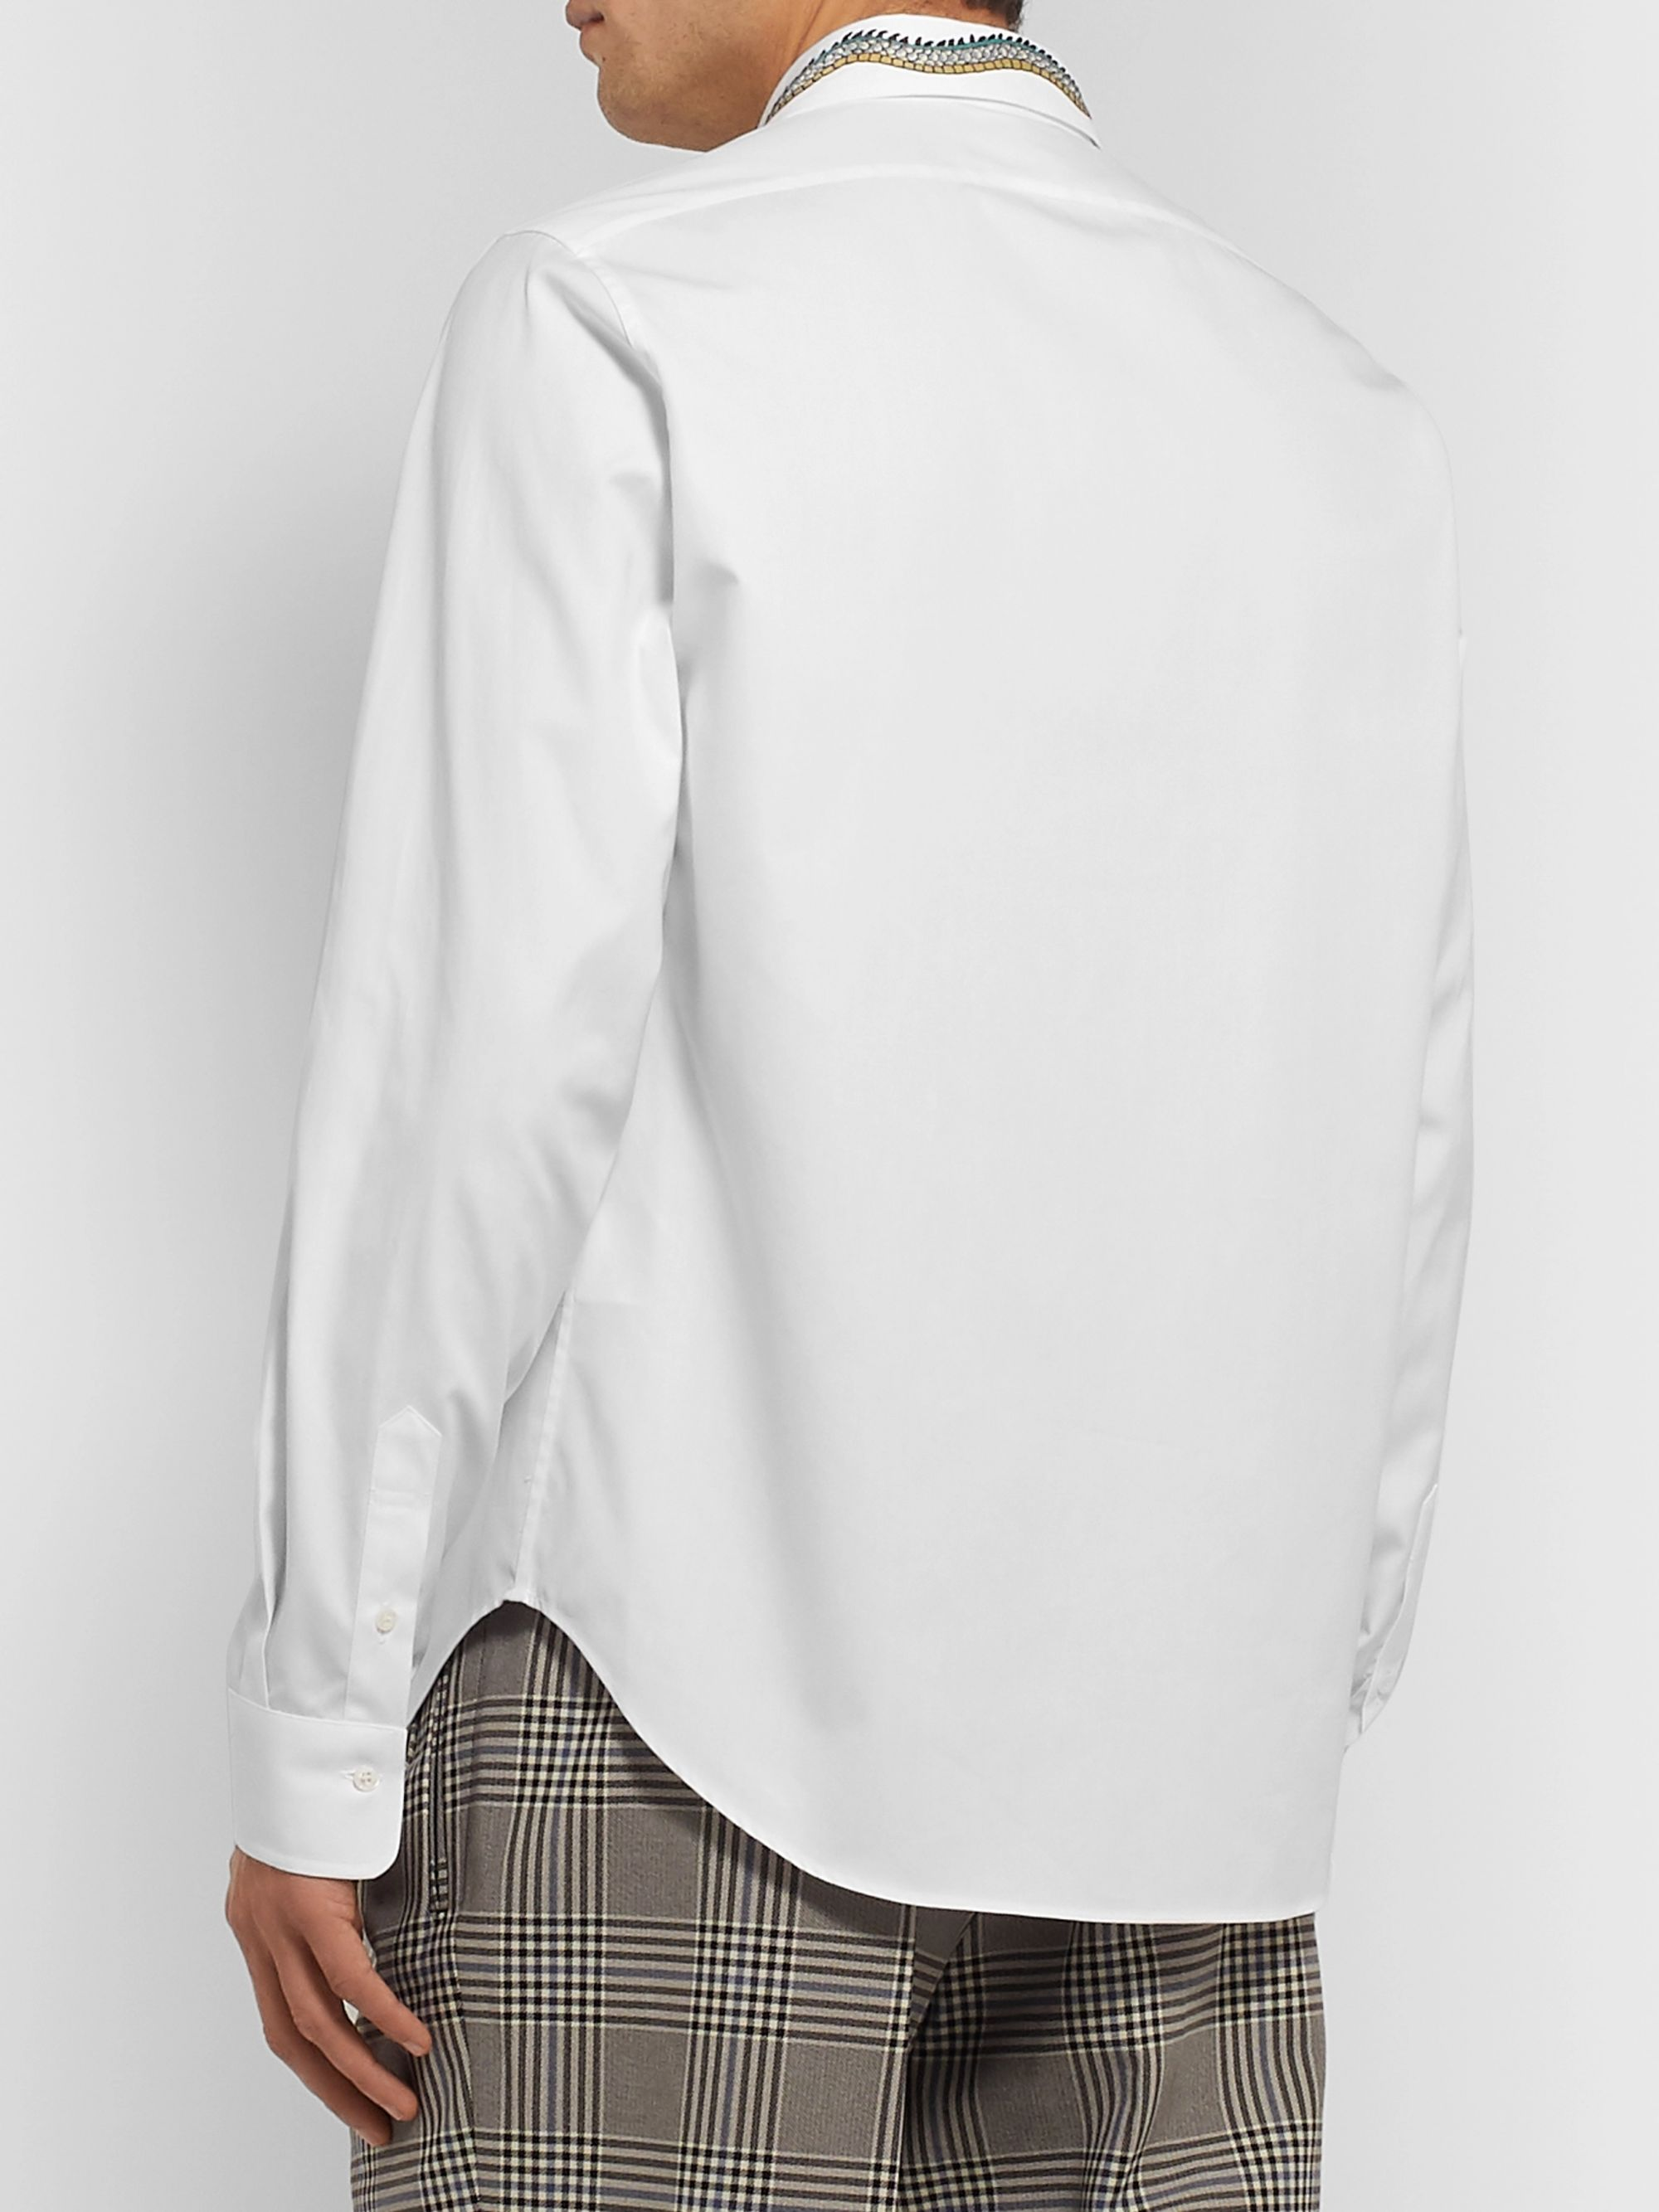 GUCCI White Slim-Fit Cutaway-Collar Embroidered Cotton-Poplin Shirt